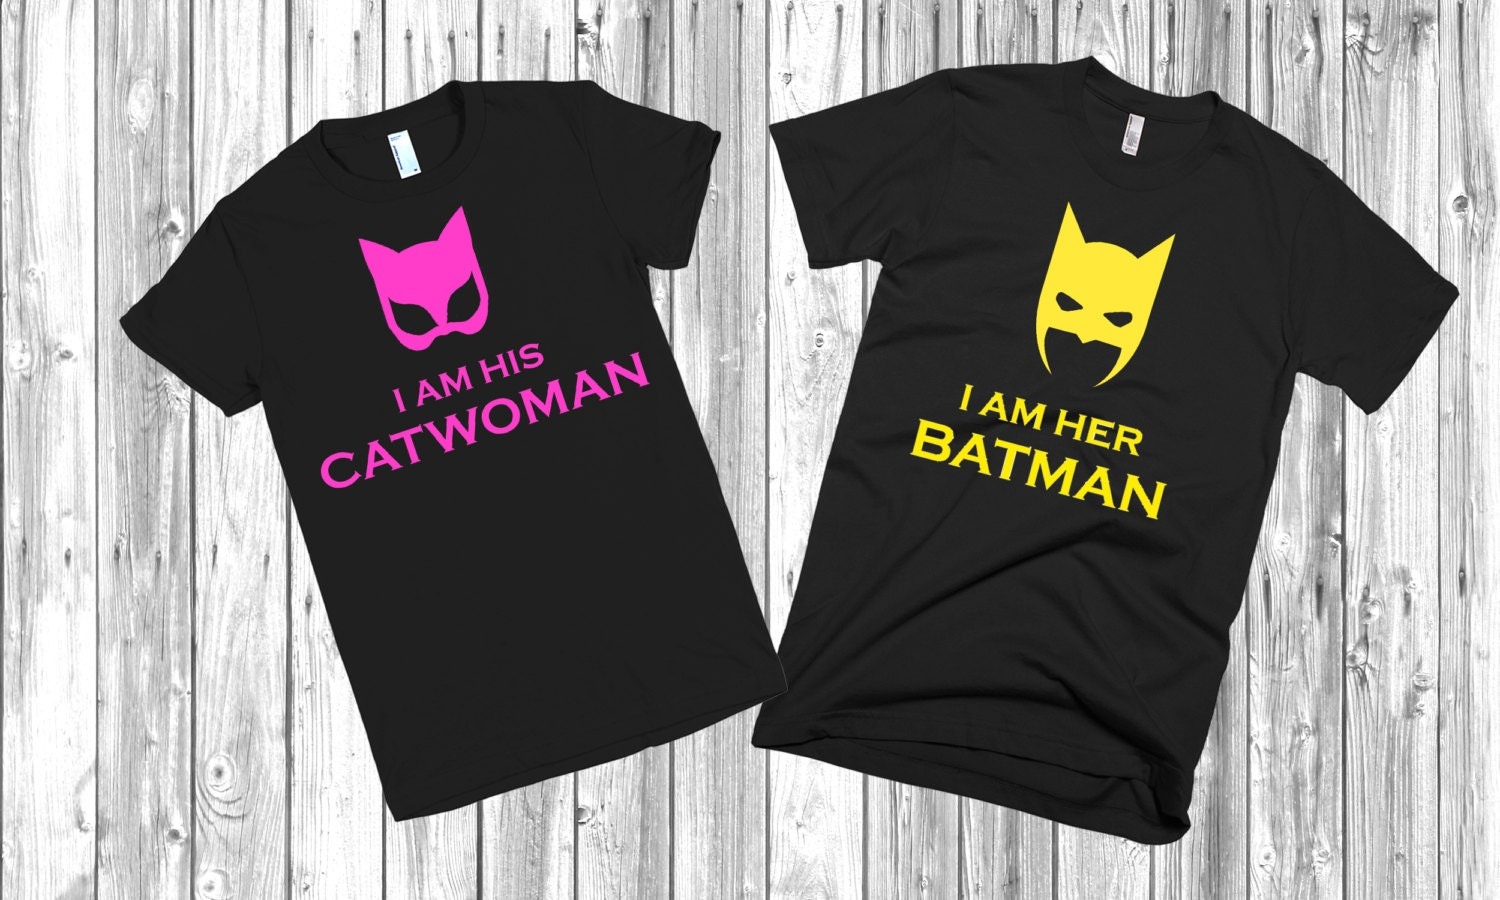 Couple T Shirts Batman And Catwoman Price For 1